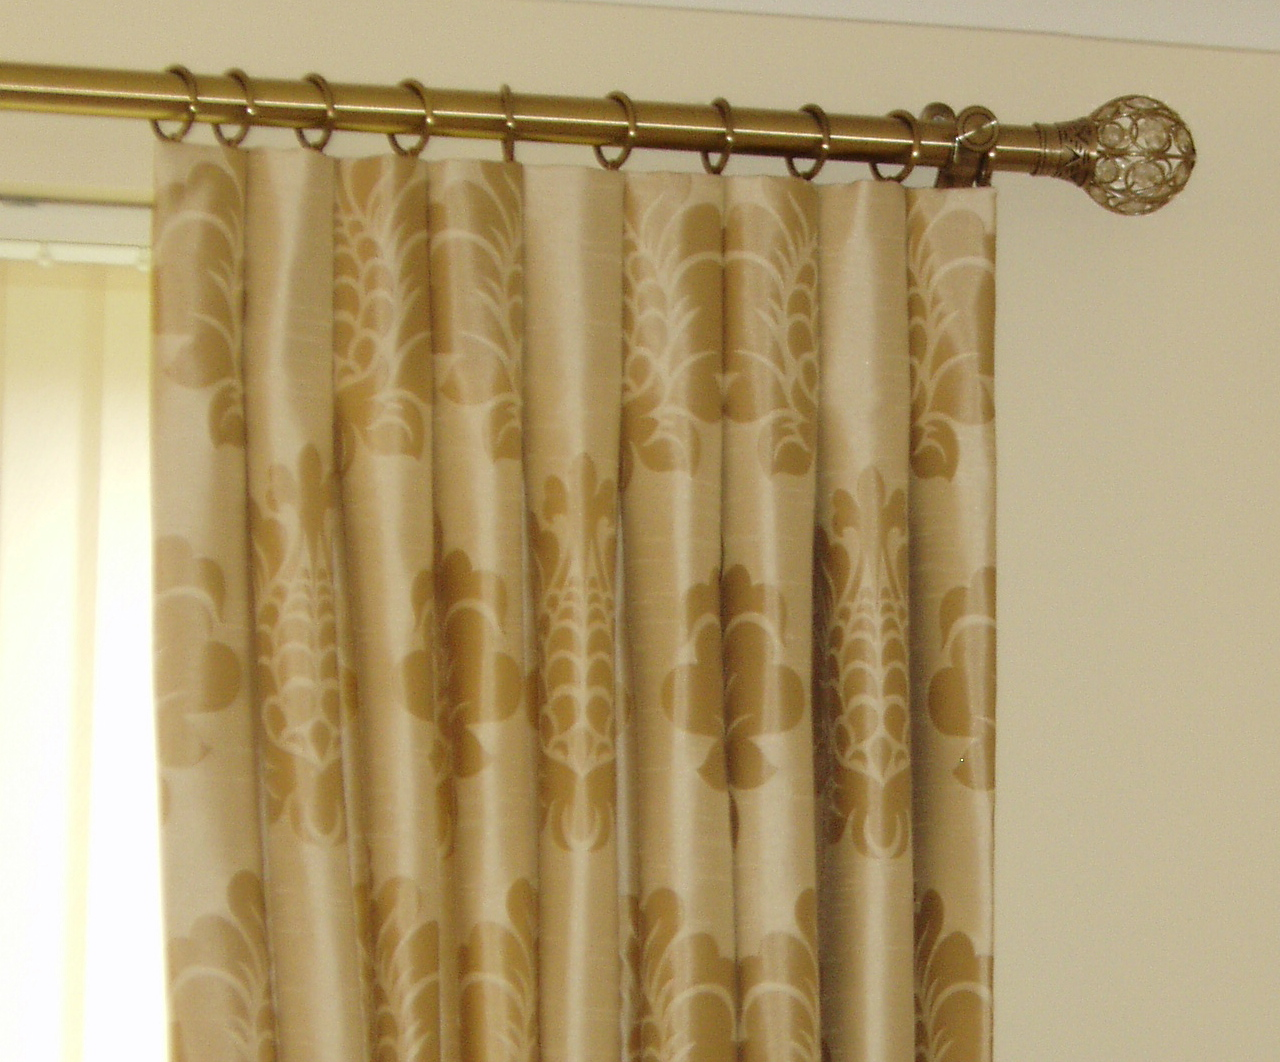 Pleat Hooks For Curtains 28 Images How To Pinch Pleat Curtains With Ikea Hardware Pinch